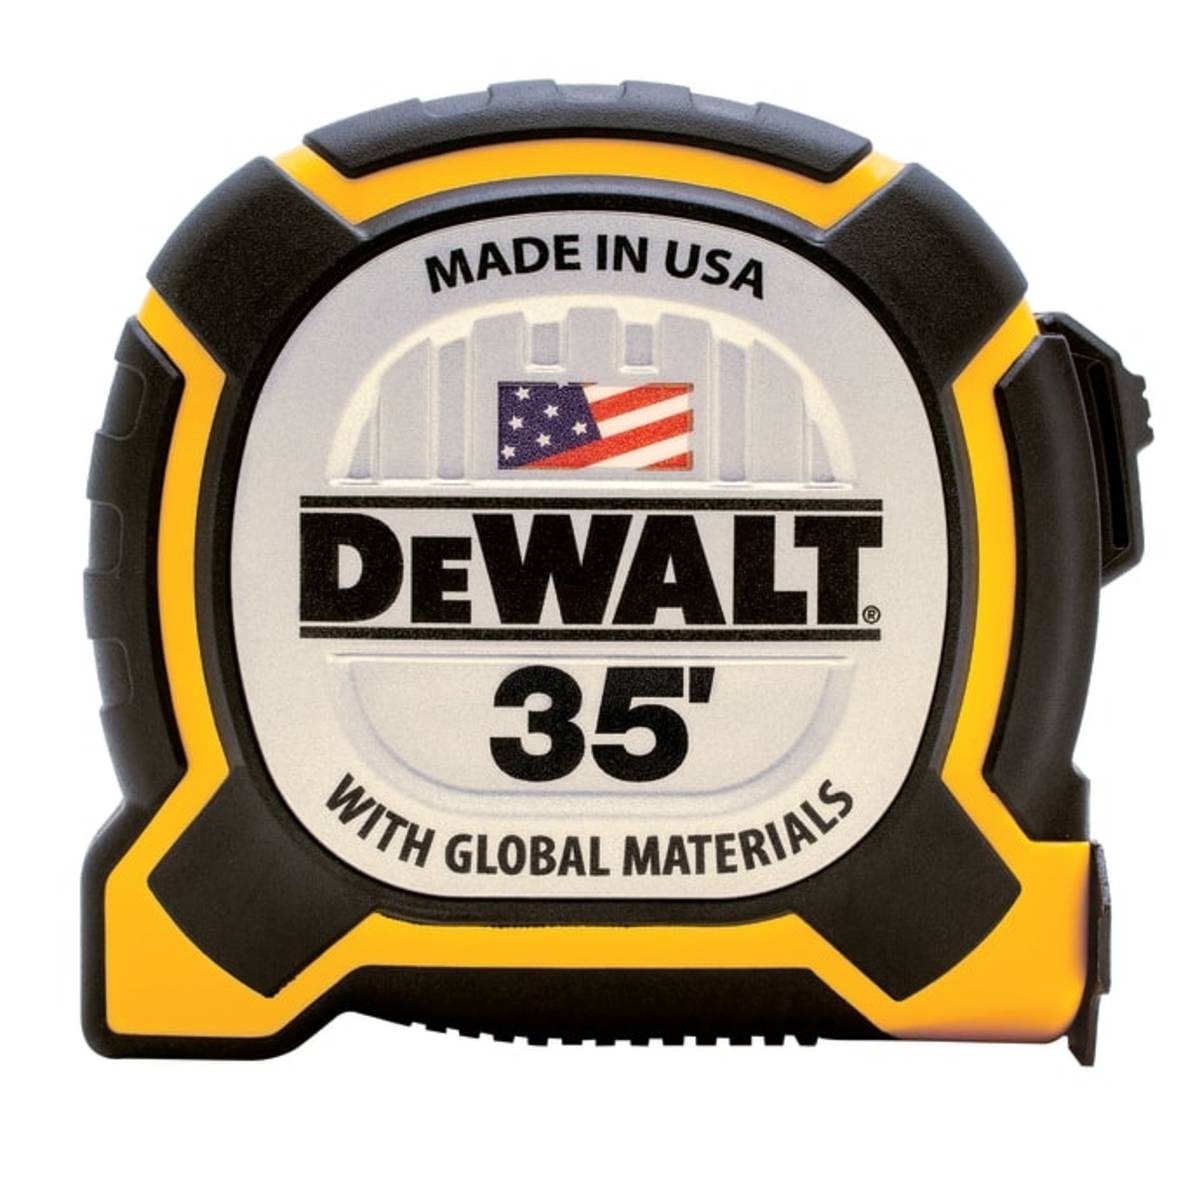 The DeWalt 35' XP tape measure